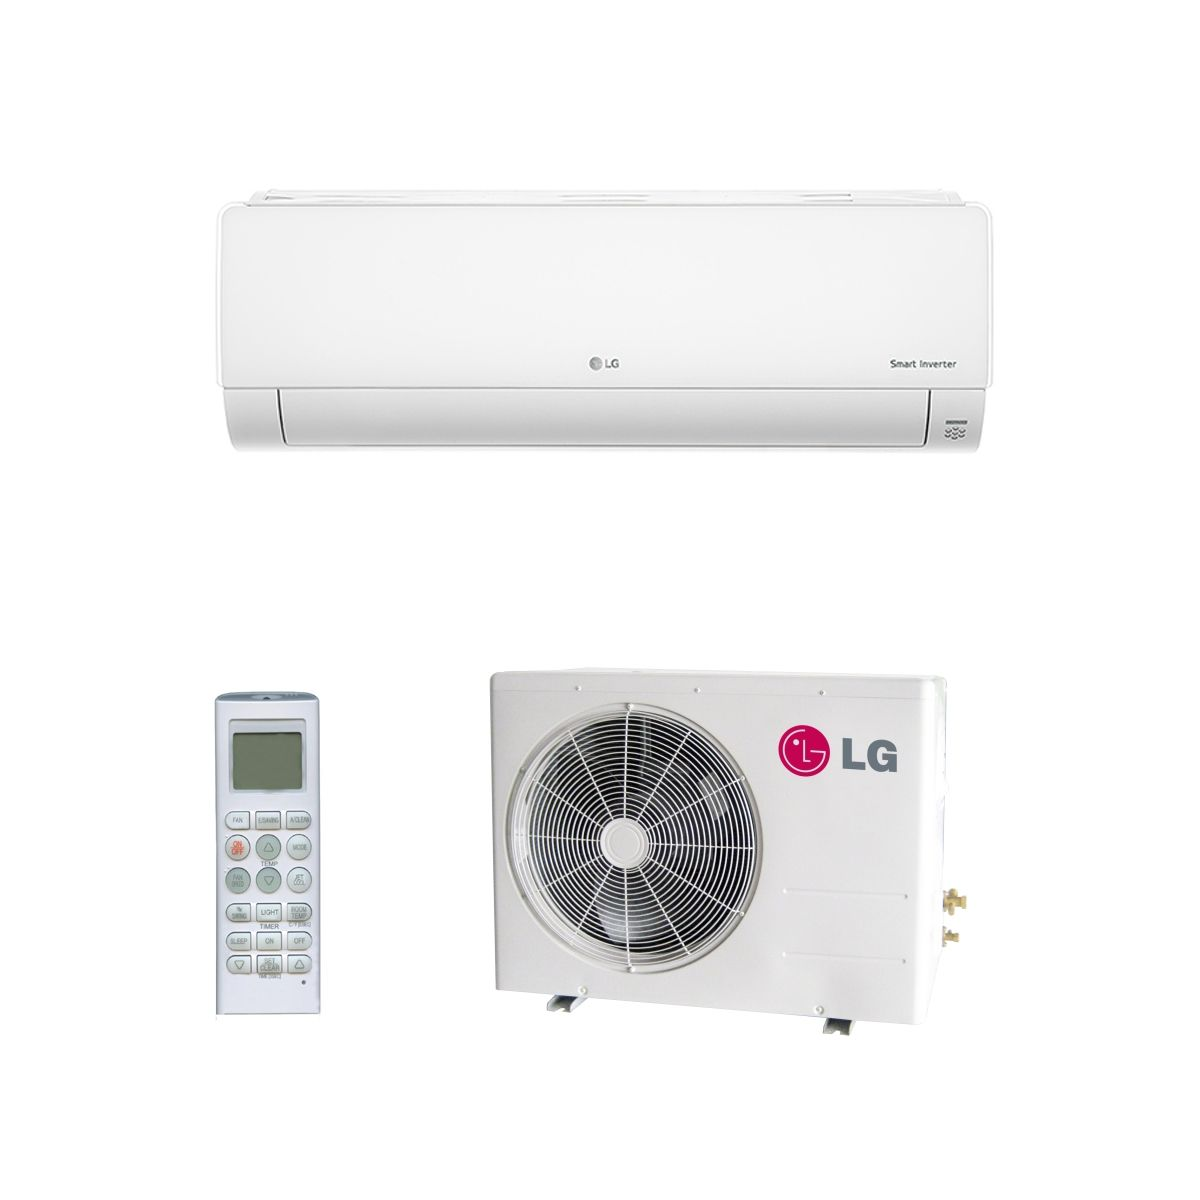 Lg Air Conditioning Standard Plus Pm18spnsk Wall Mounted Heat Pump